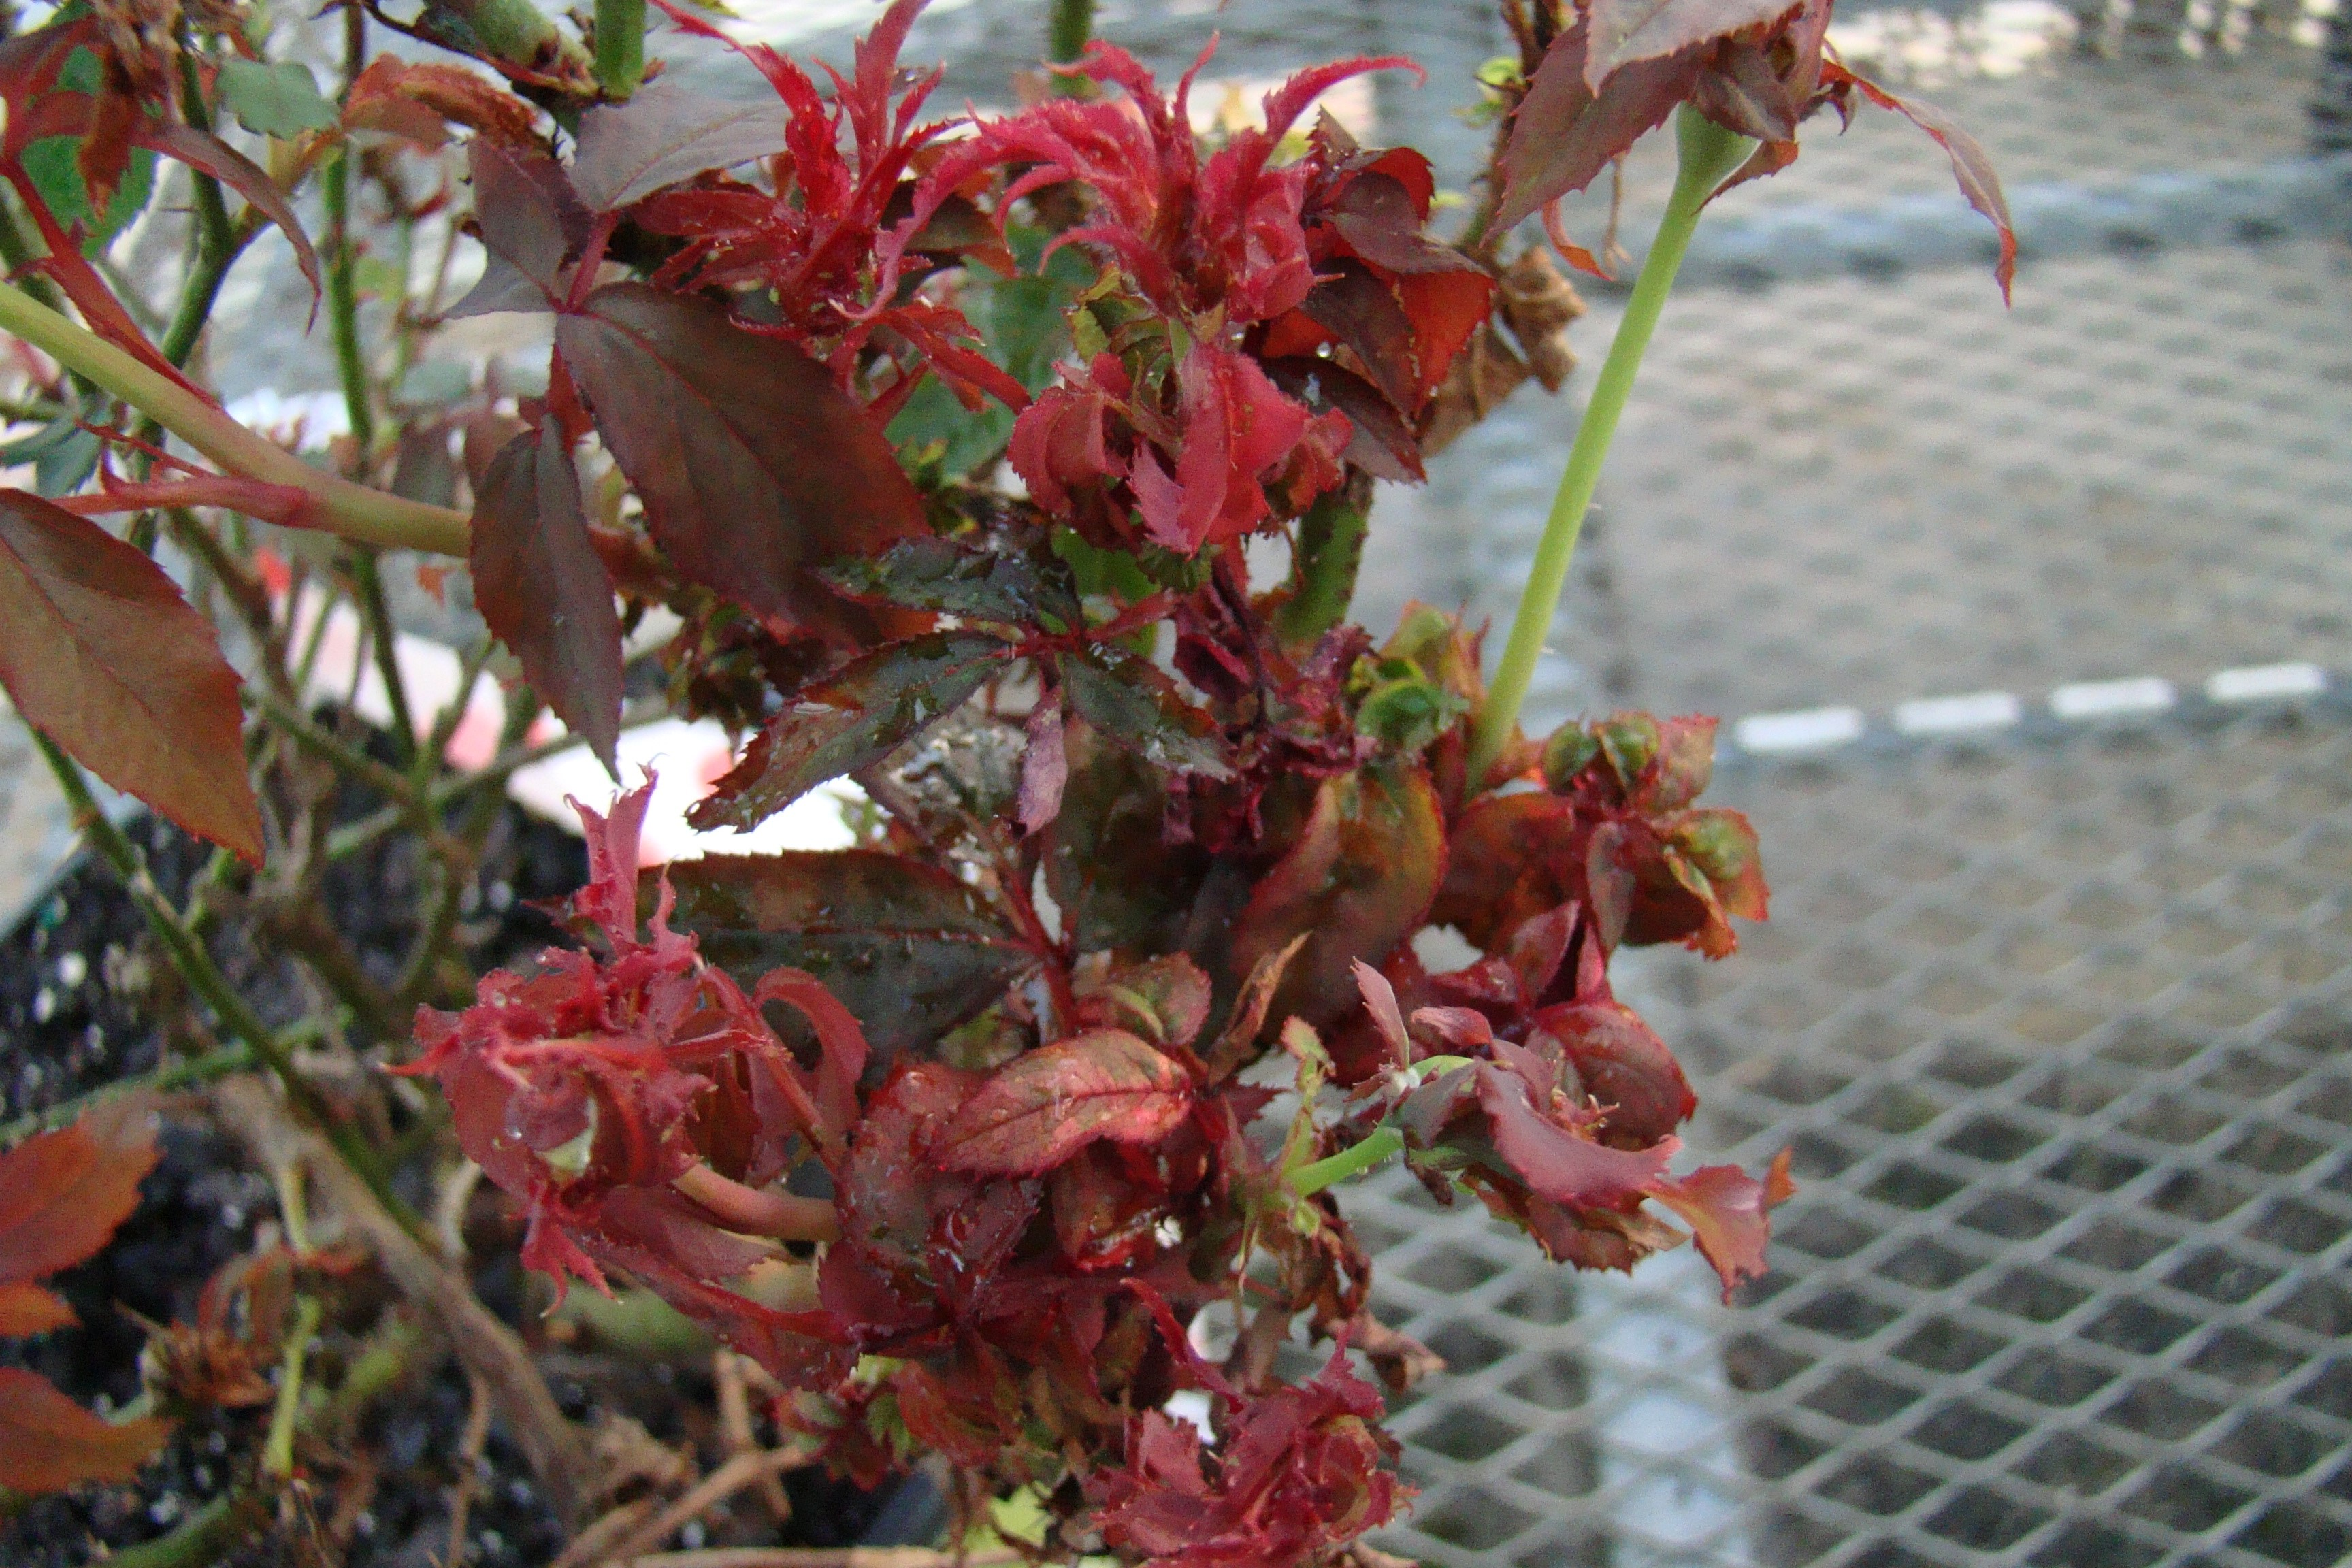 It is time to monitor for Rose Rosette Disease in Florida